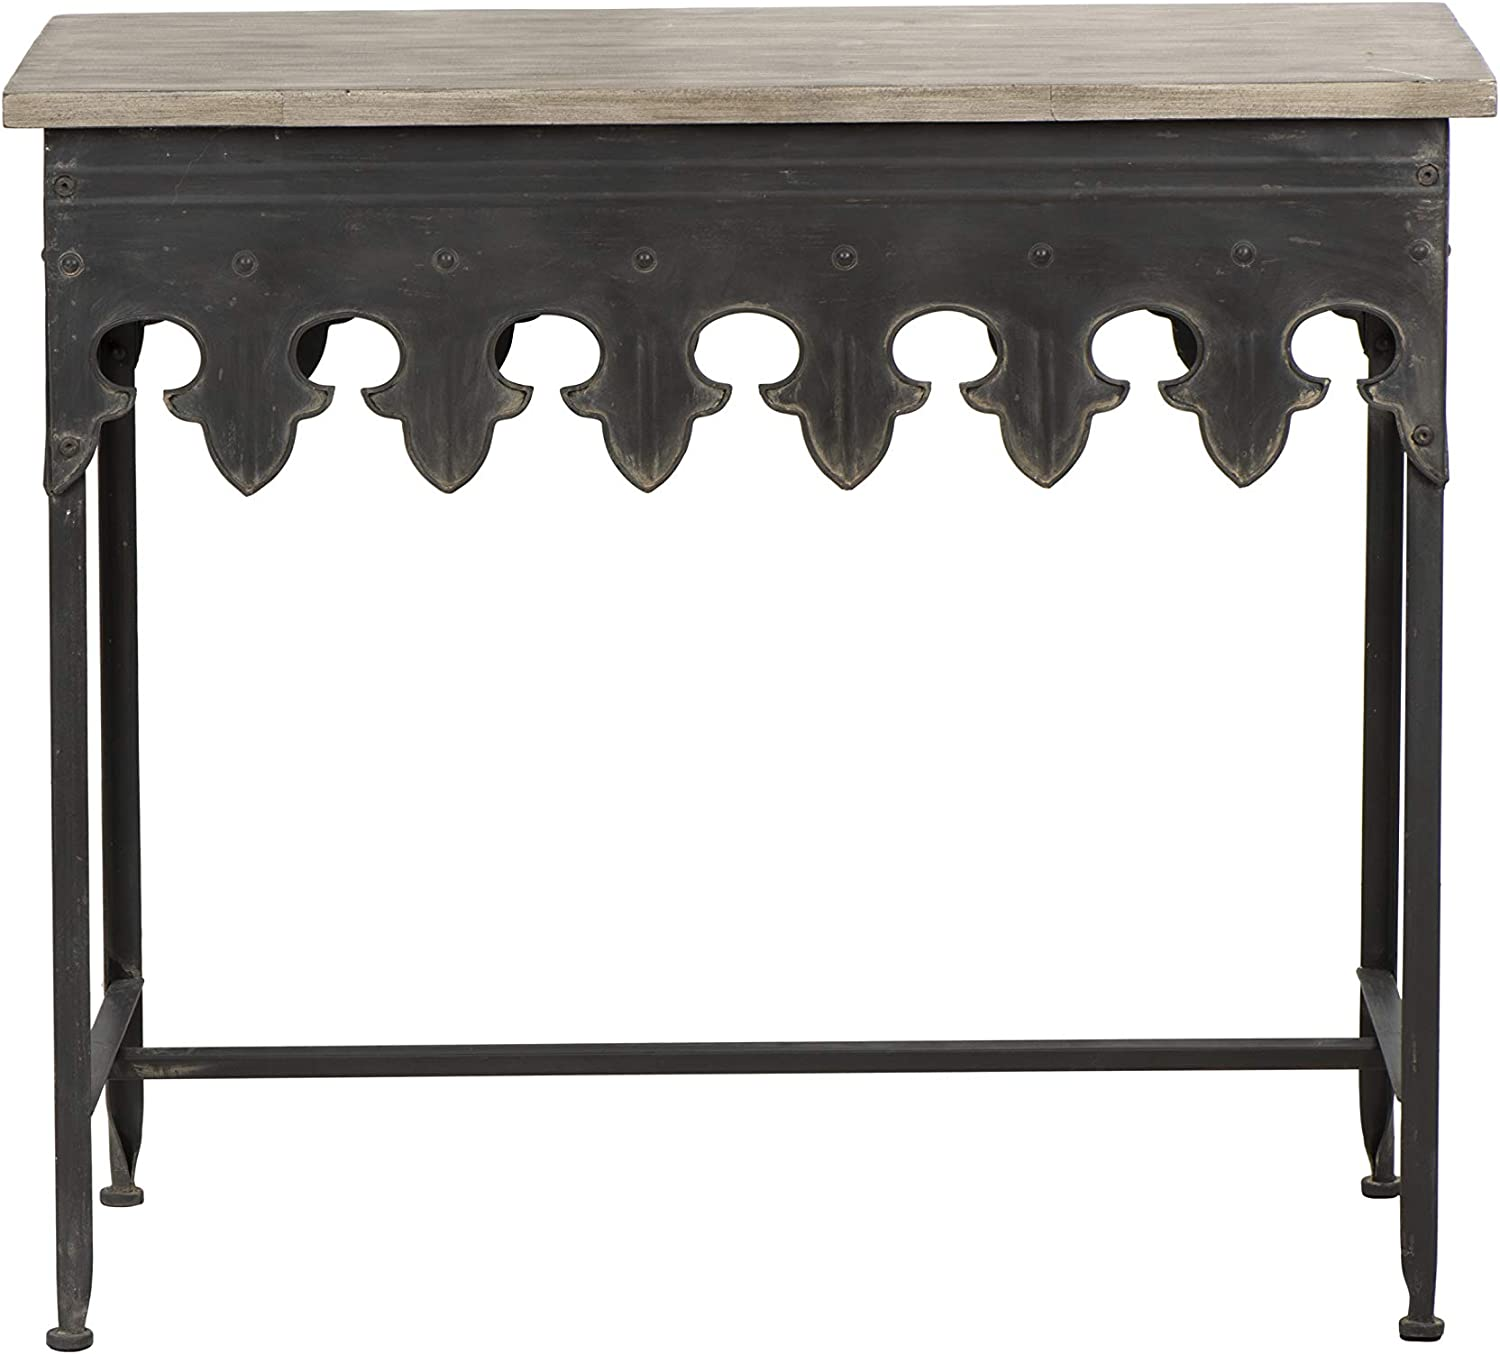 Creative Co-op Metal Scalloped Edge Table Wood Top, Distressed Dark Grey